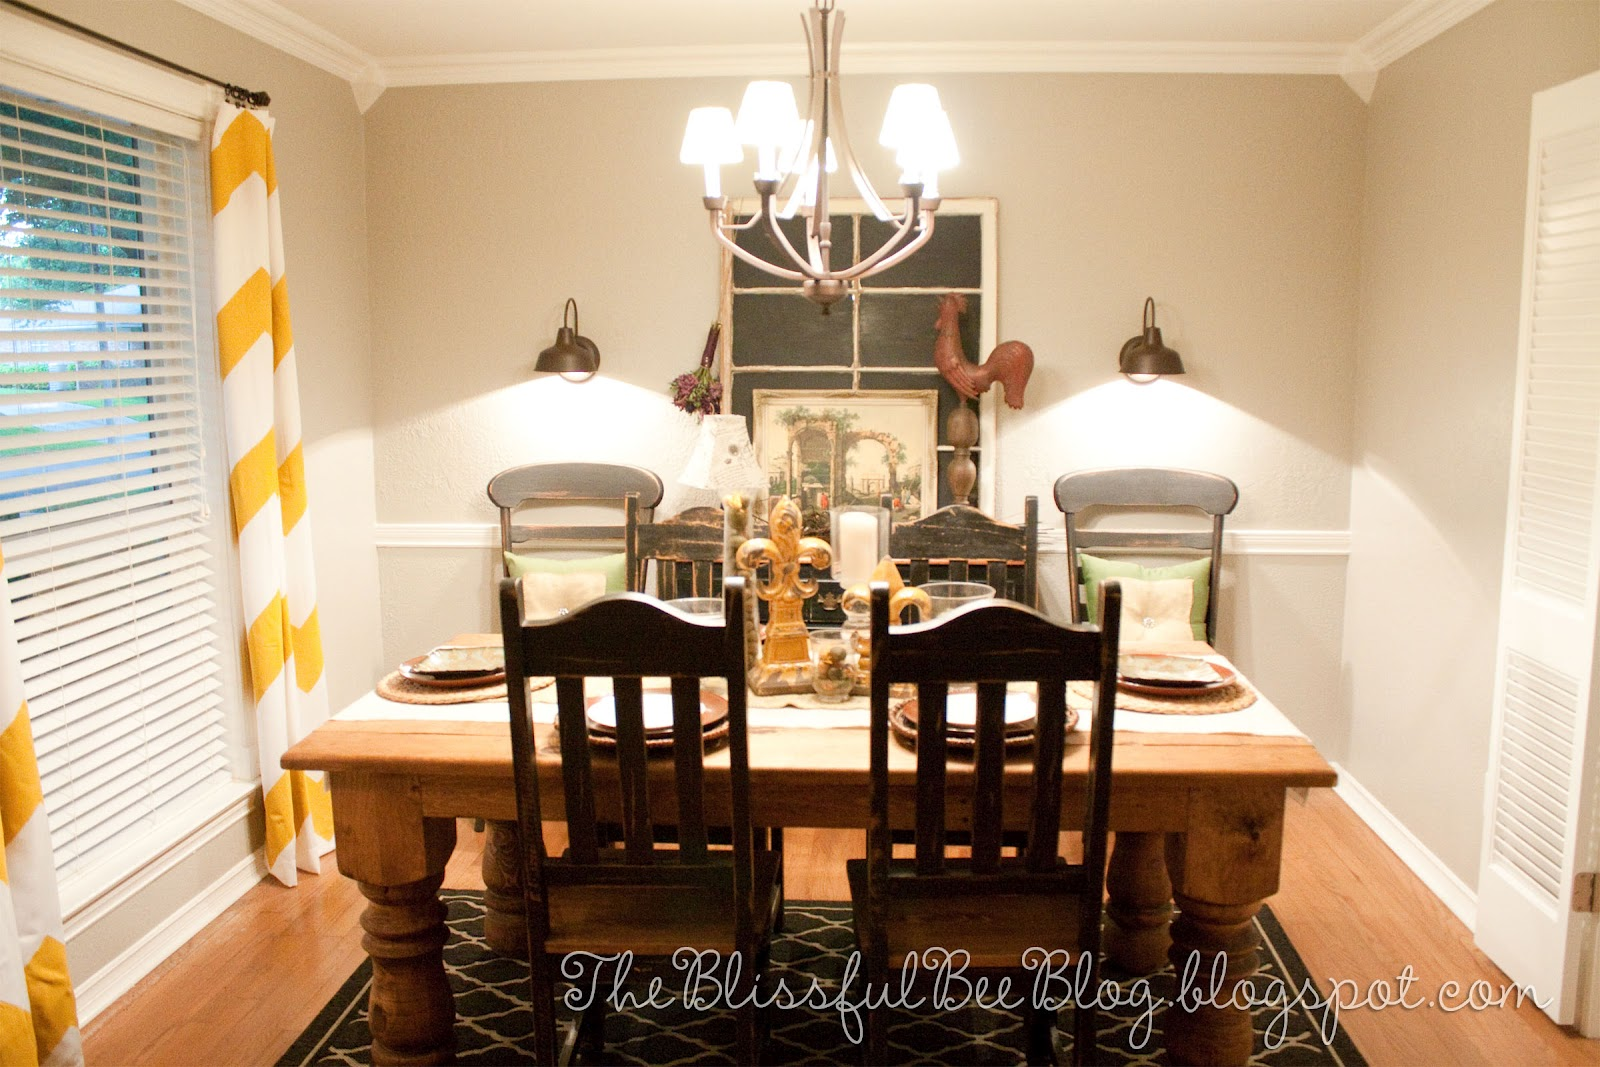 Superb Go Green And Gold! Ok Getting A Little Distractedu2026 Anyways! Here Is A  Closer Look At Our Dining Room. Keep Scrolling Down For The Before Pics.